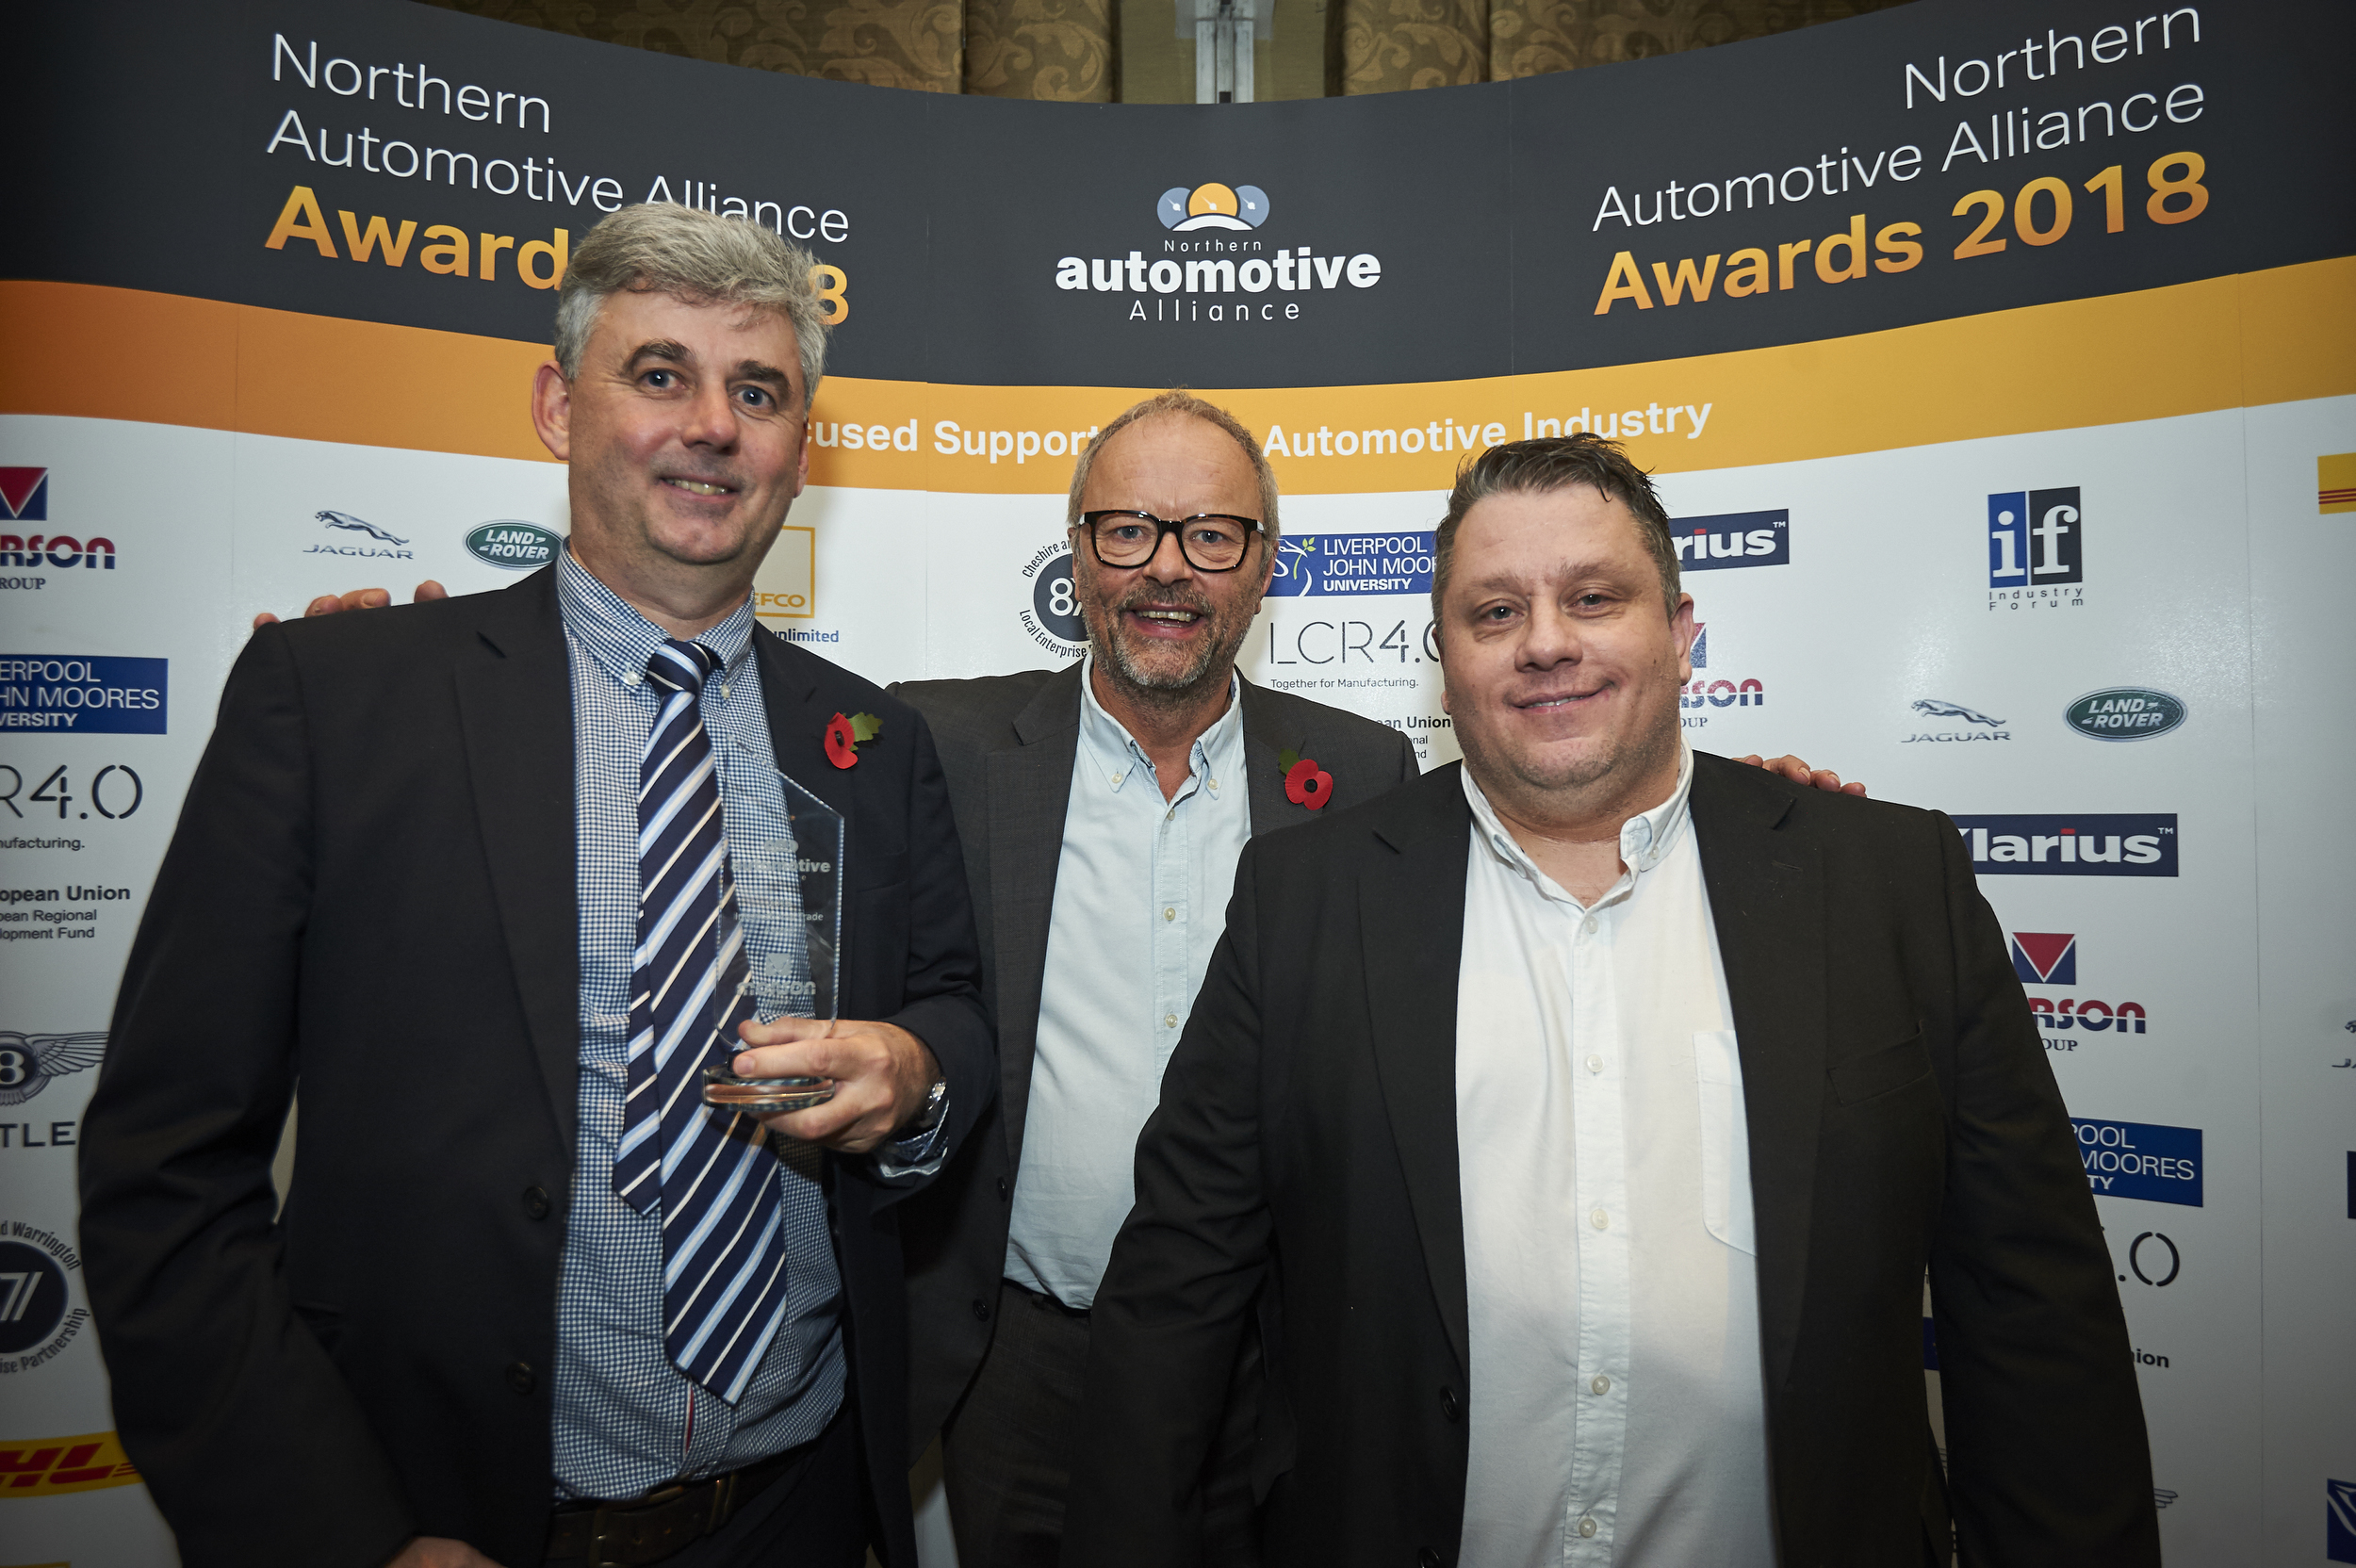 Klarius wins Northern Automotive Alliance International Trade Award 2018